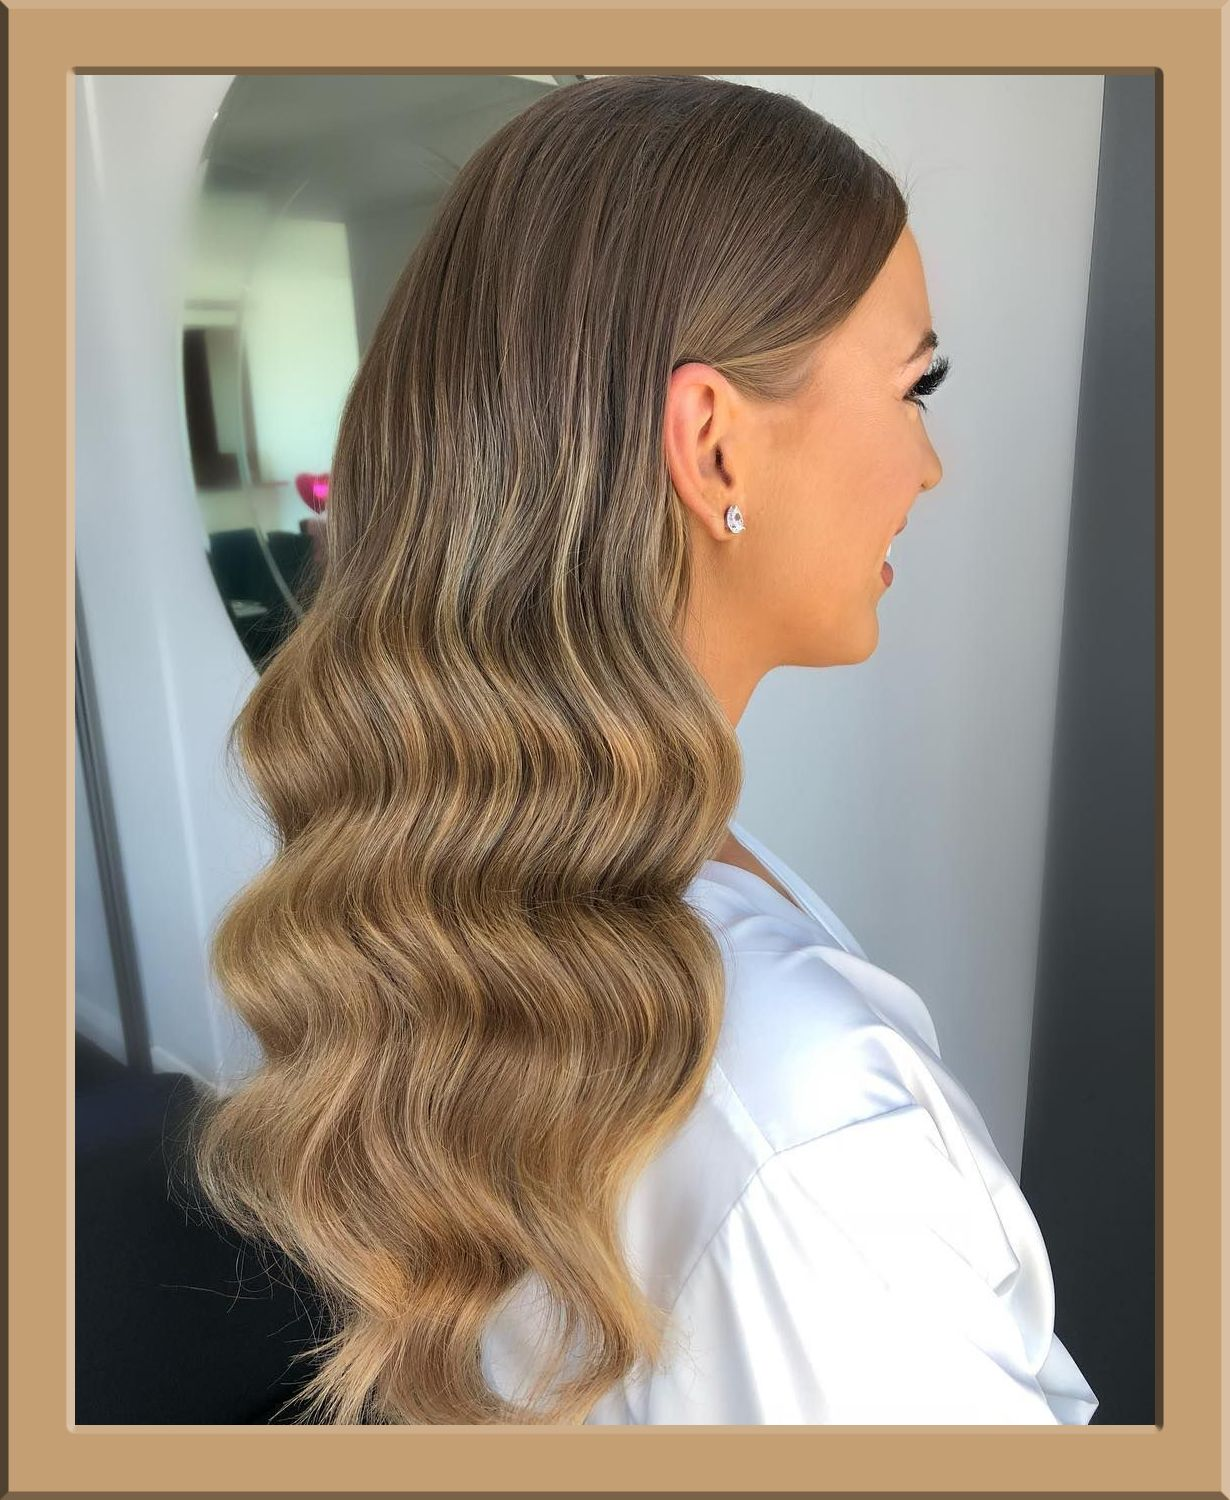 The Lazy Way To Hair Styles – Oct 2020